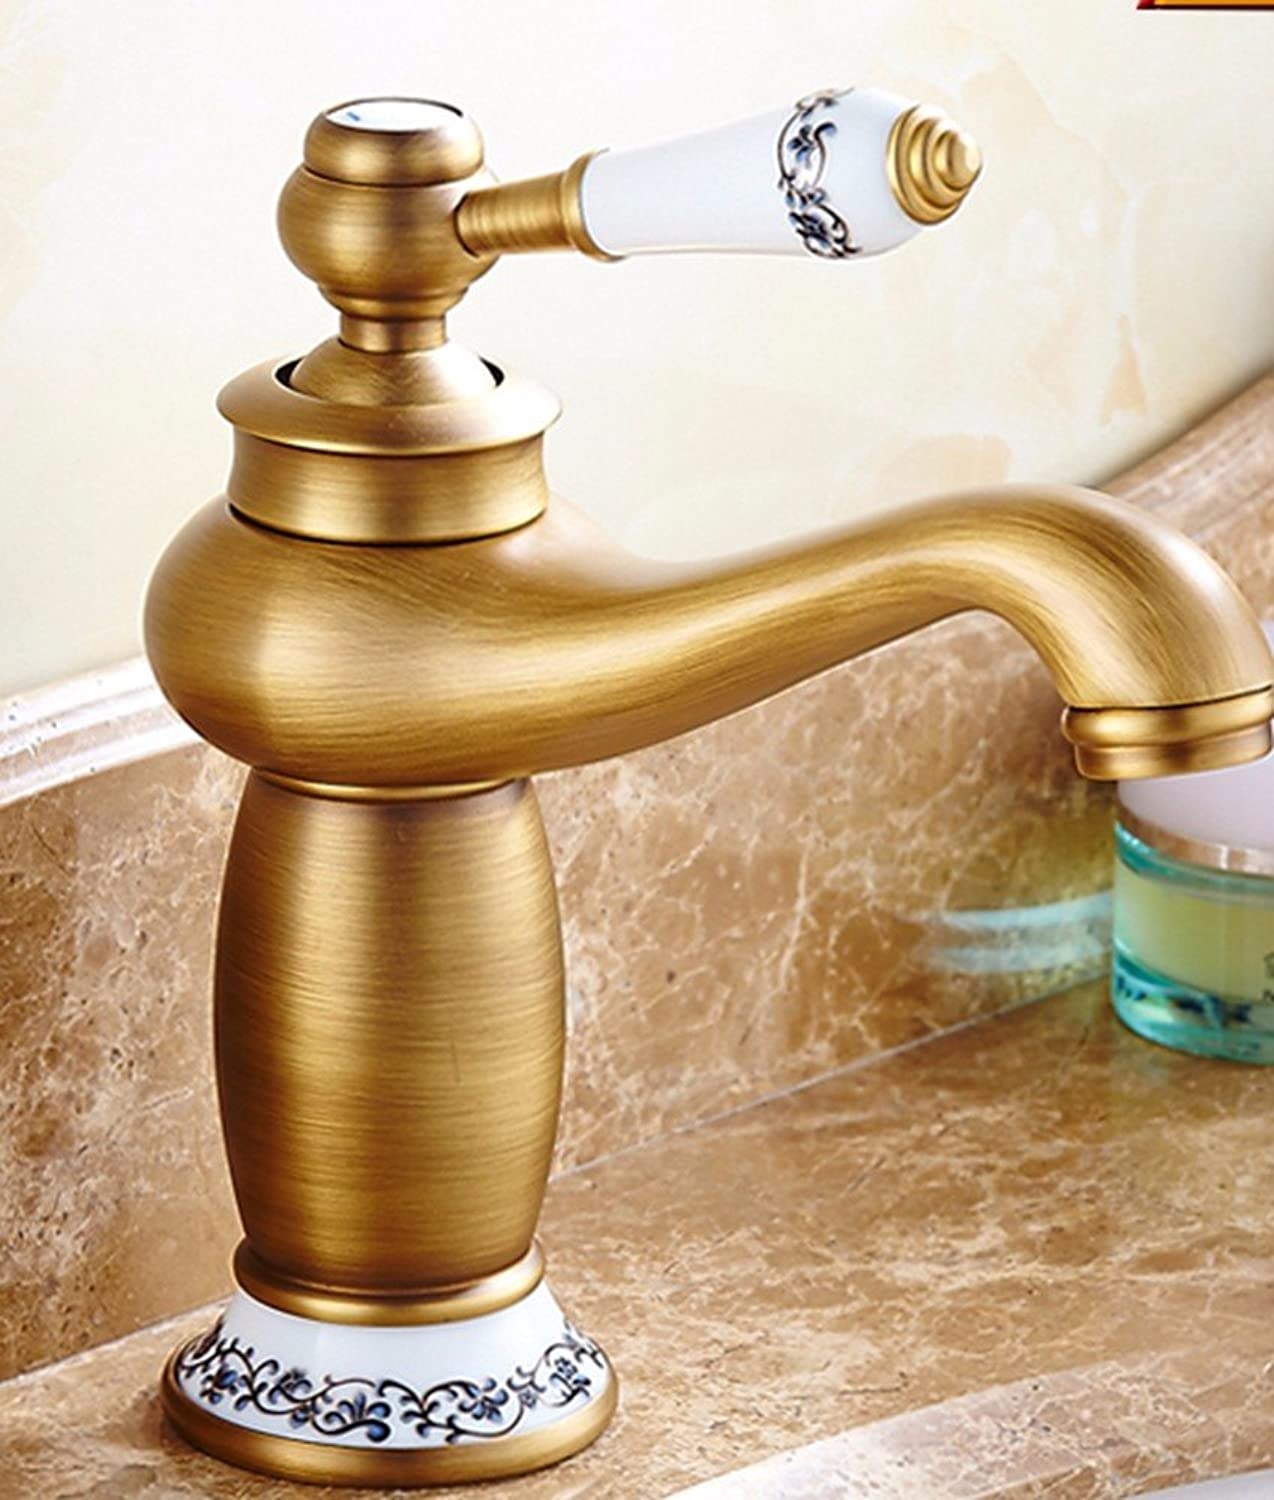 AWXJX European Style Retroot And Coldouble Handle Single Hole Washbasinll Copper Sink Faucet T